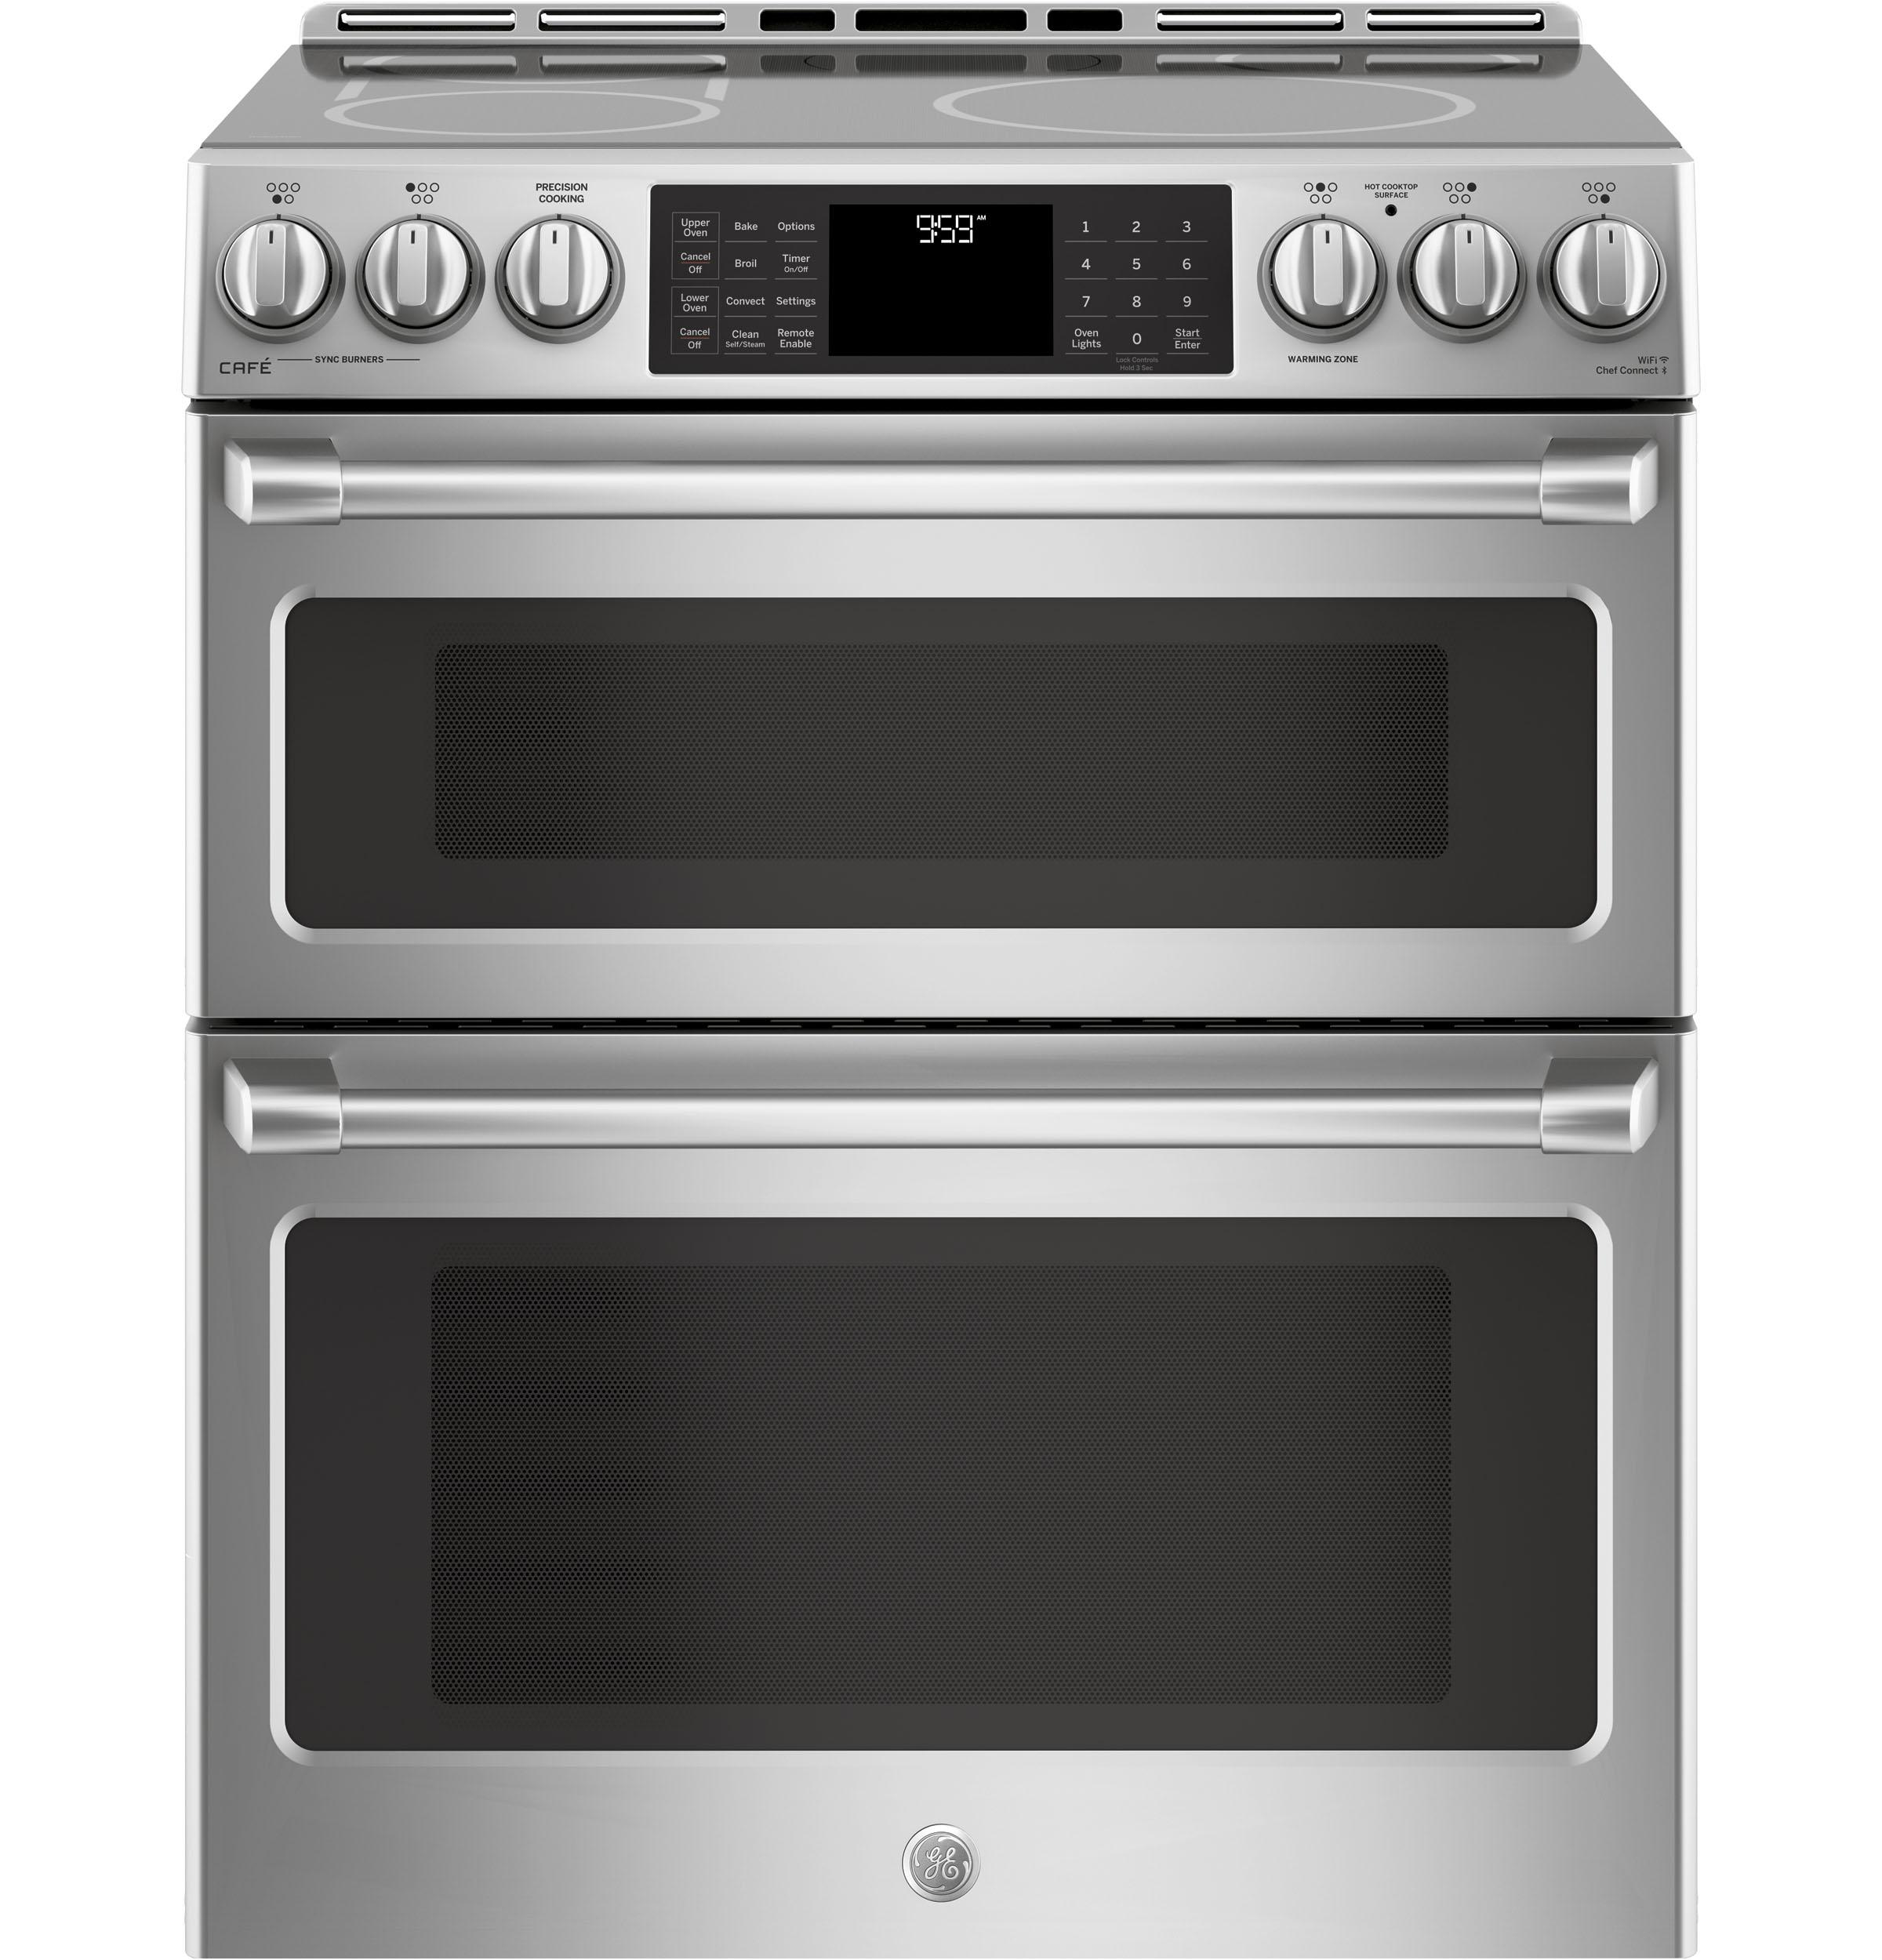 "GE Cafe(TM) Series 30"" Slide-In Front Control Induction and Convection Double Oven Range